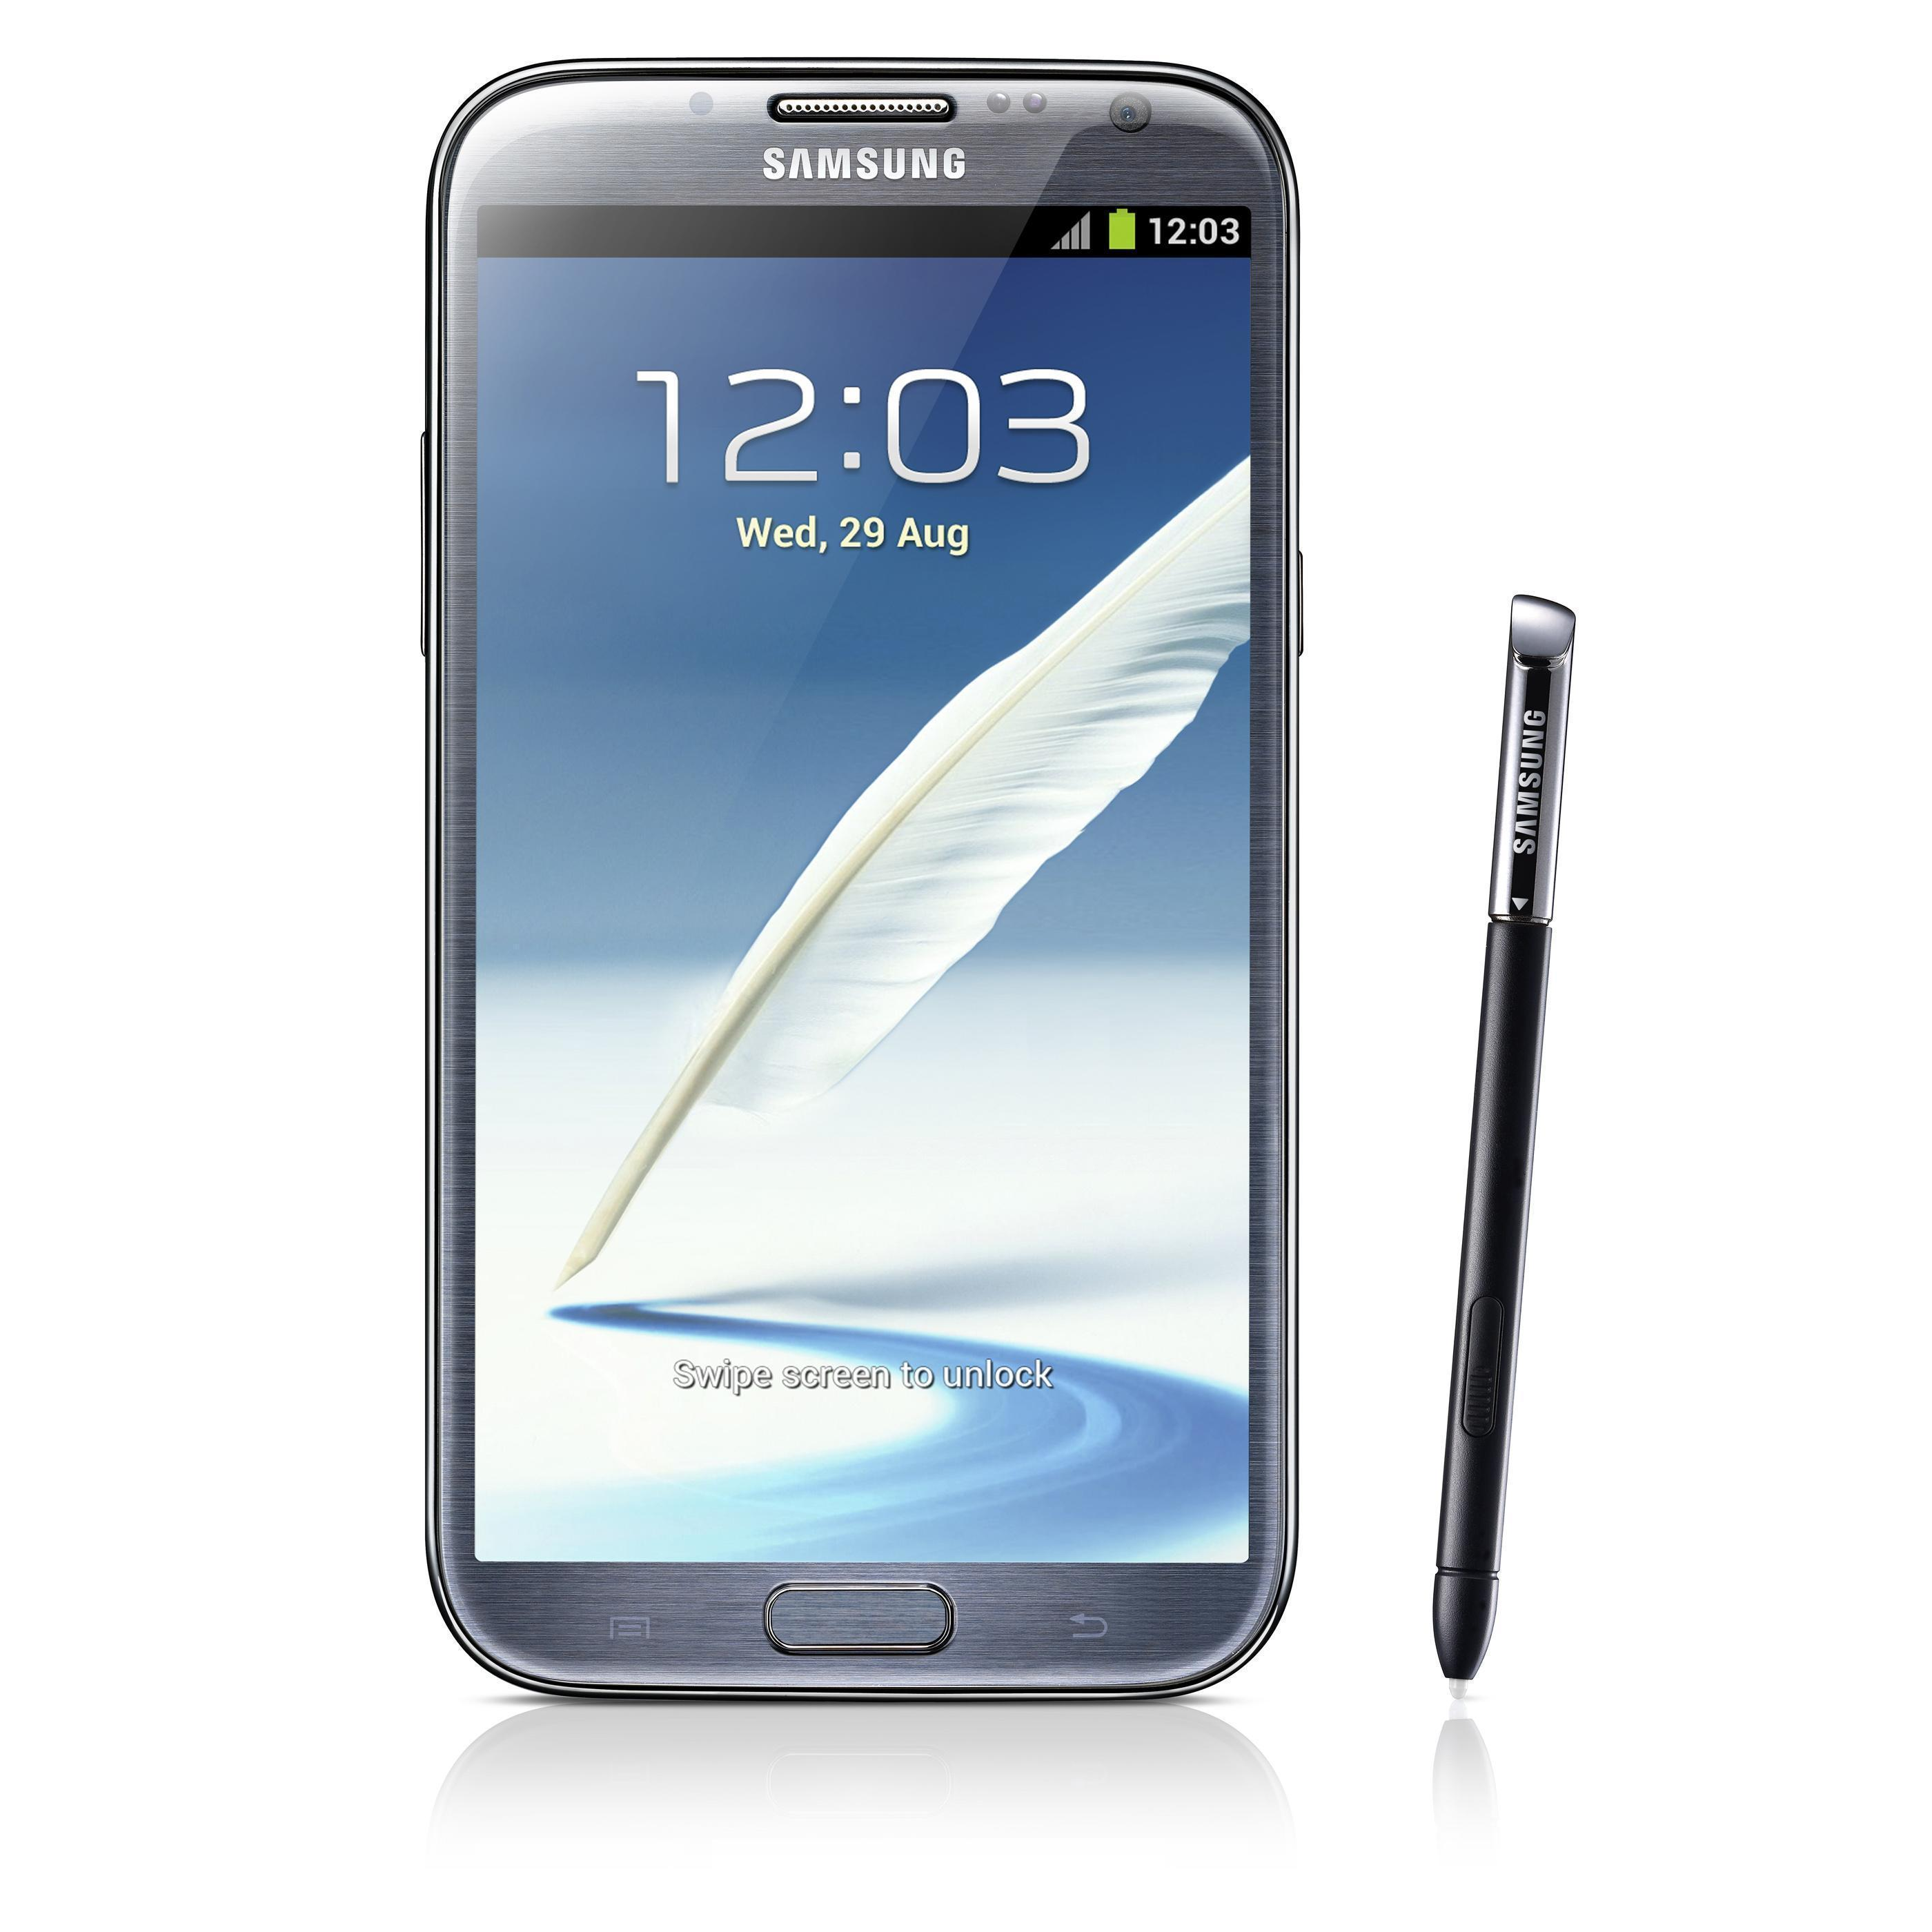 Samsung Galaxy Note 2 16 Go N7100 3G - Gris - Bouygues